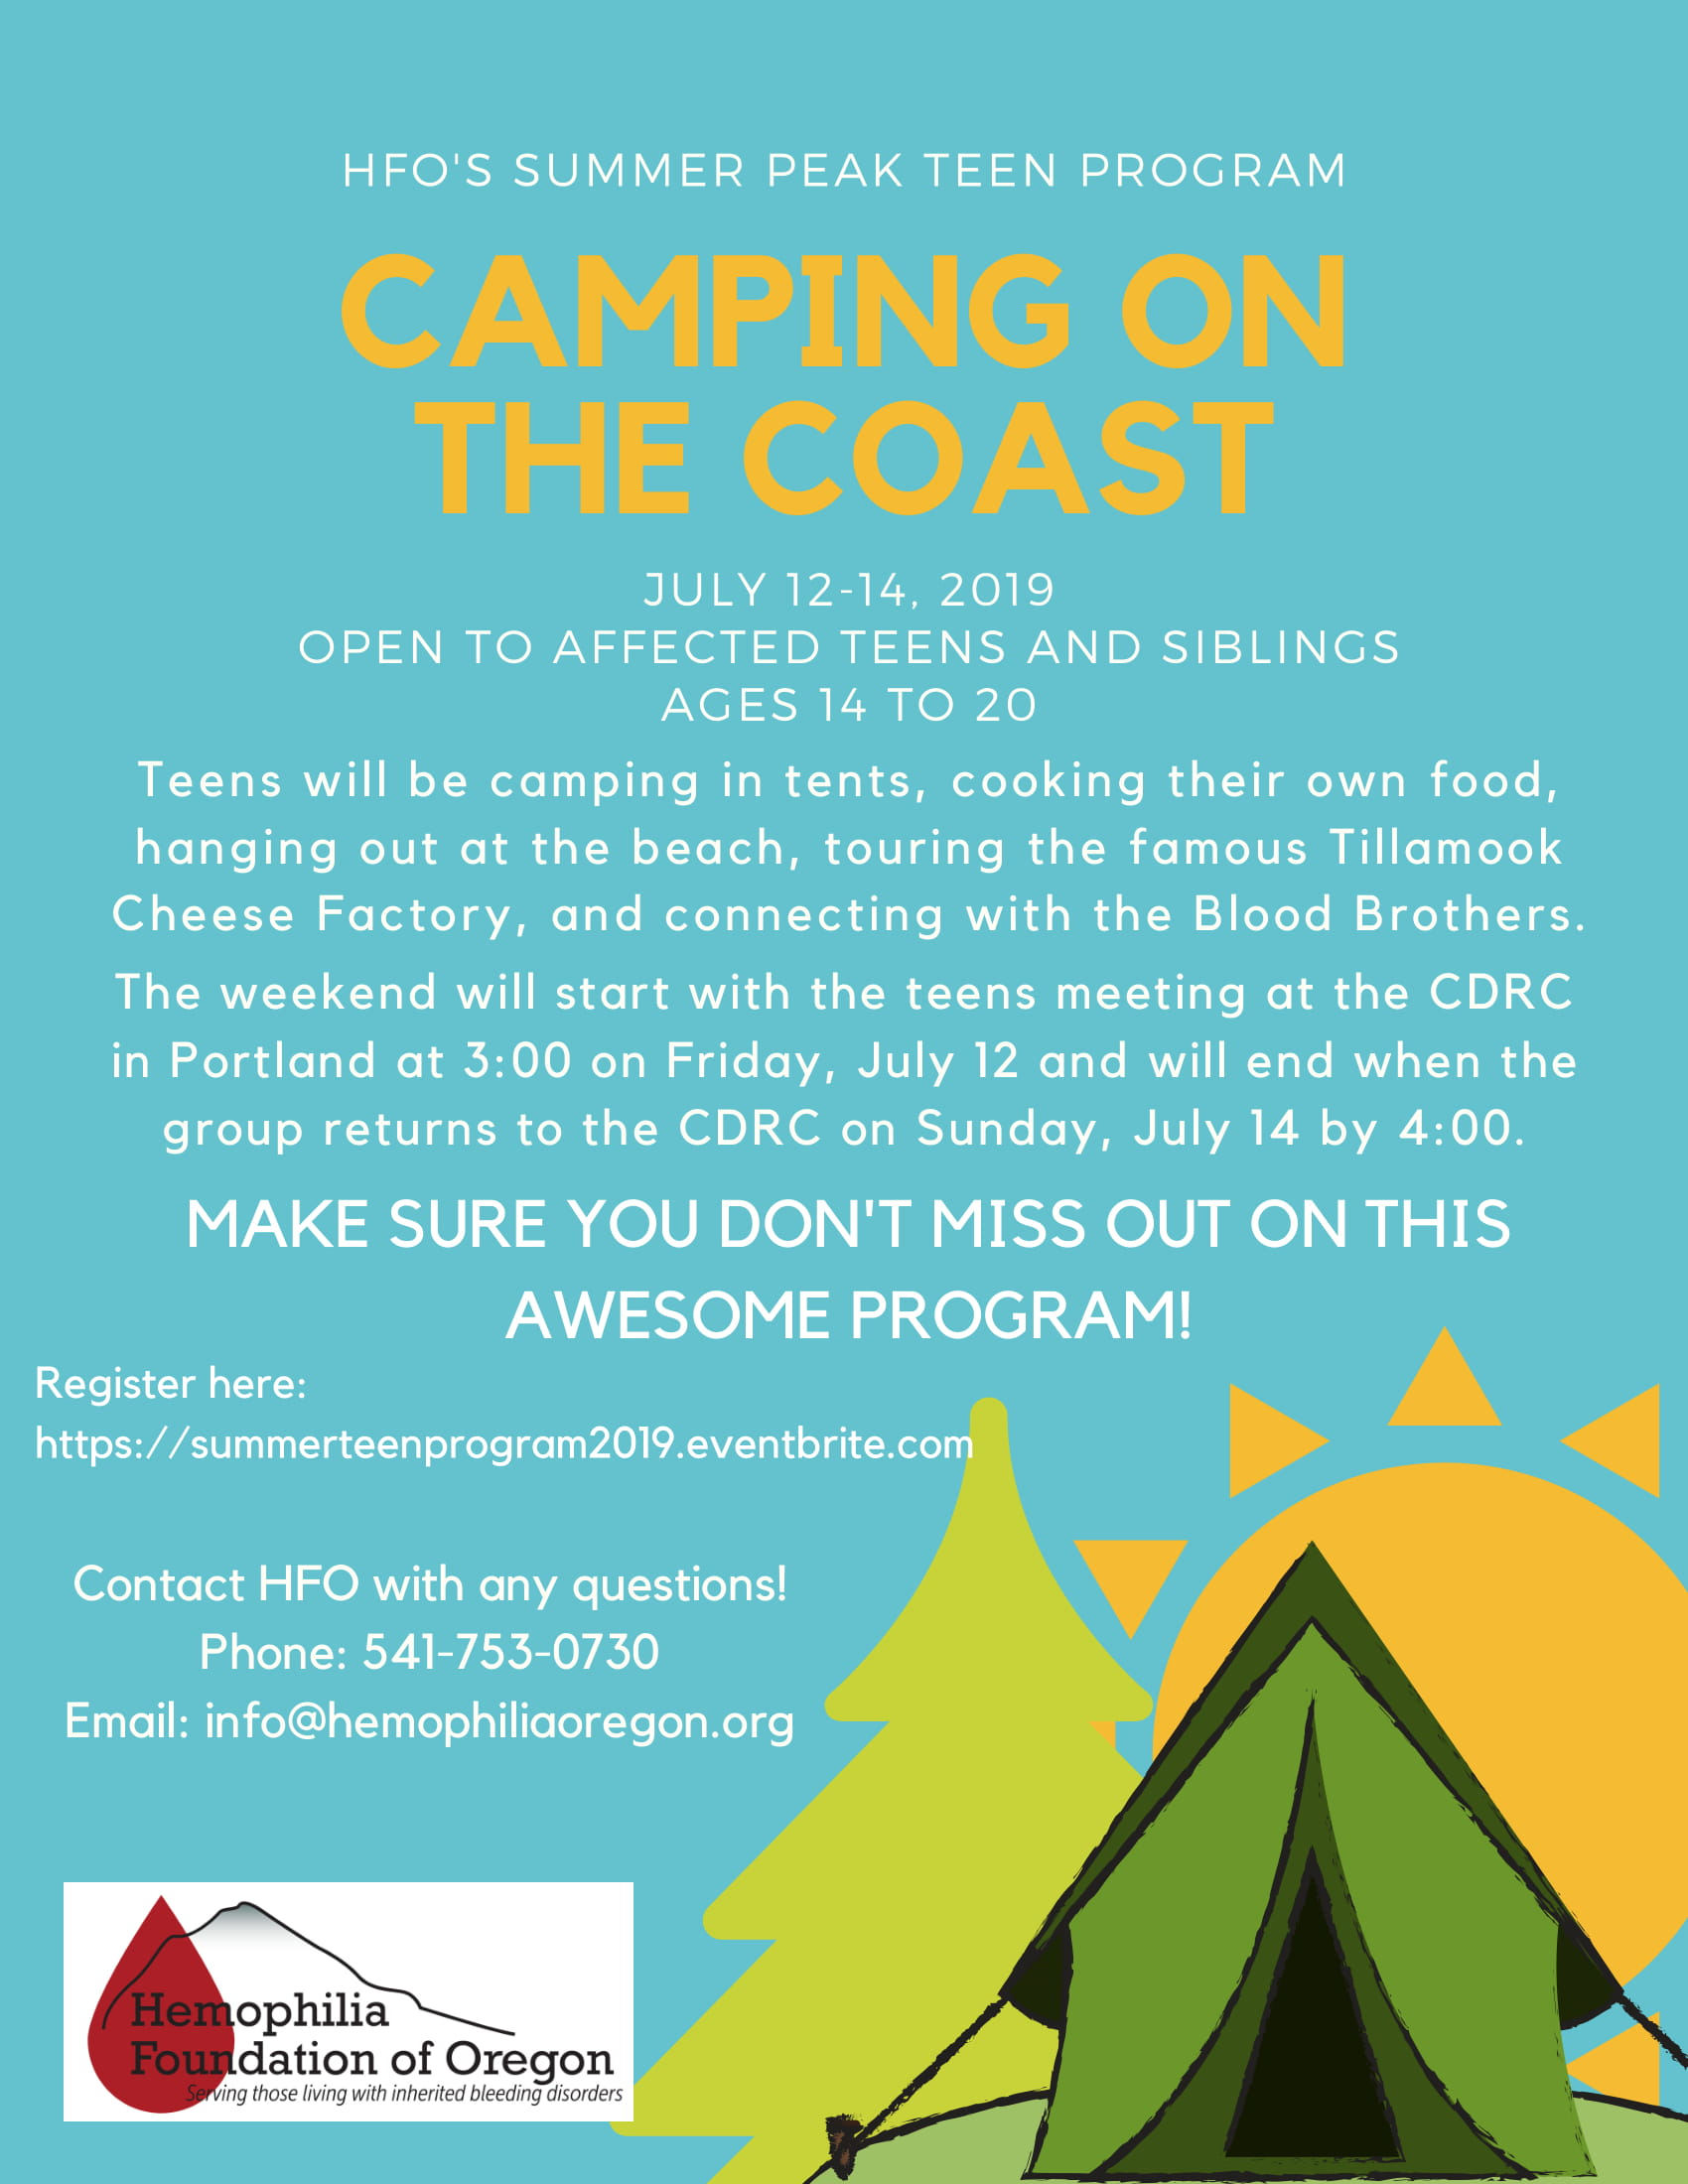 Flyer for Camping on the Coast from HFO